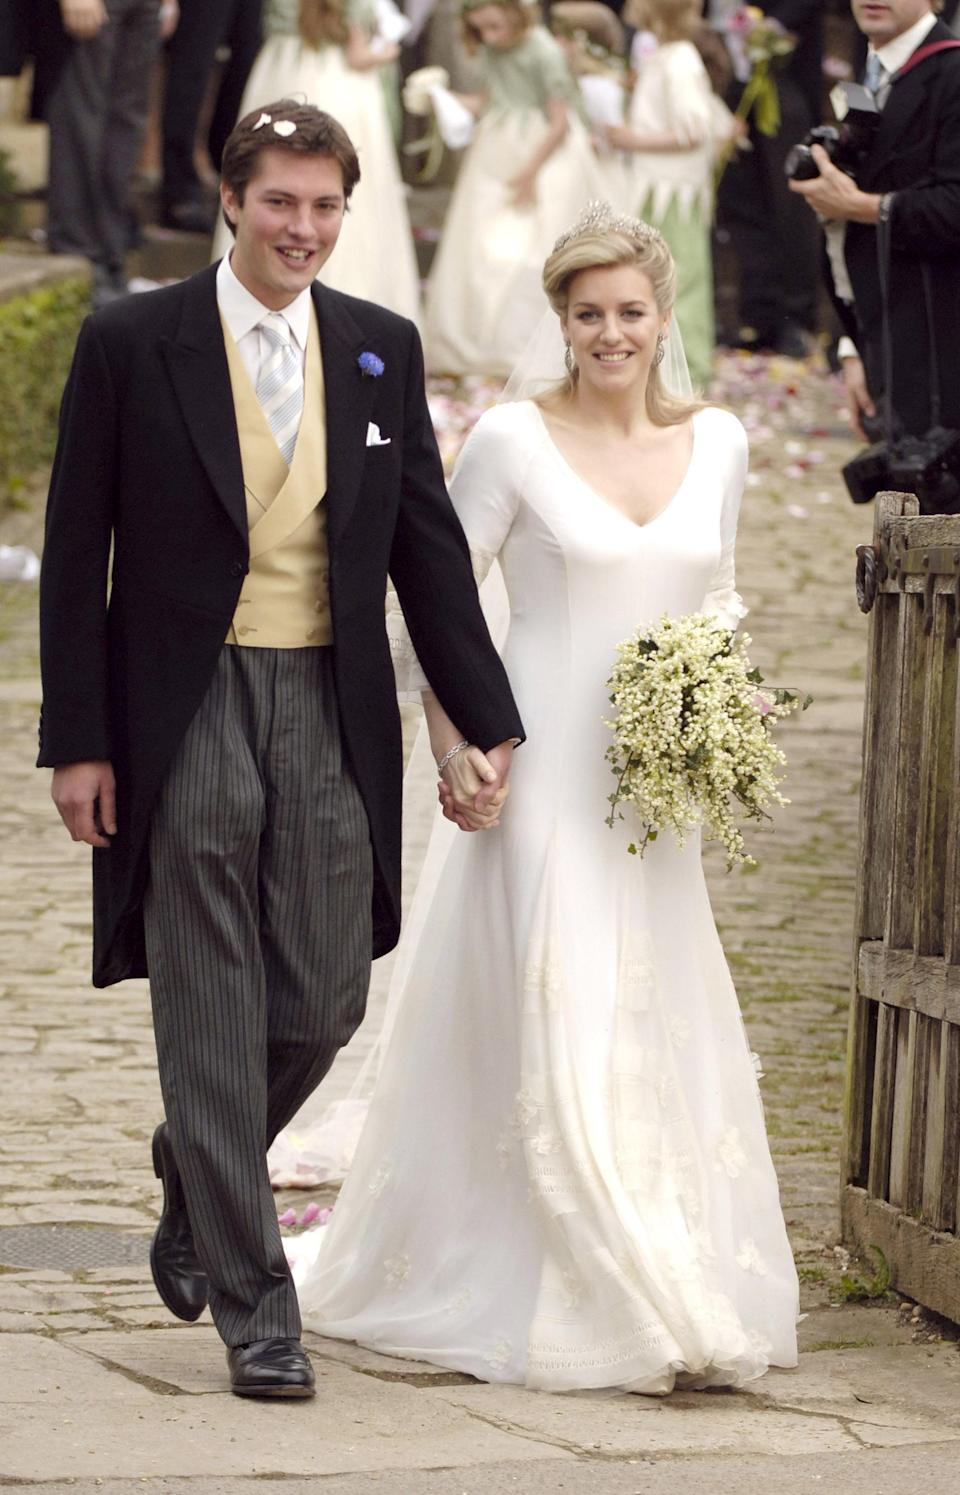 The Princes attended step-sister Laura's wedding in 2006 [Photo: Getty]